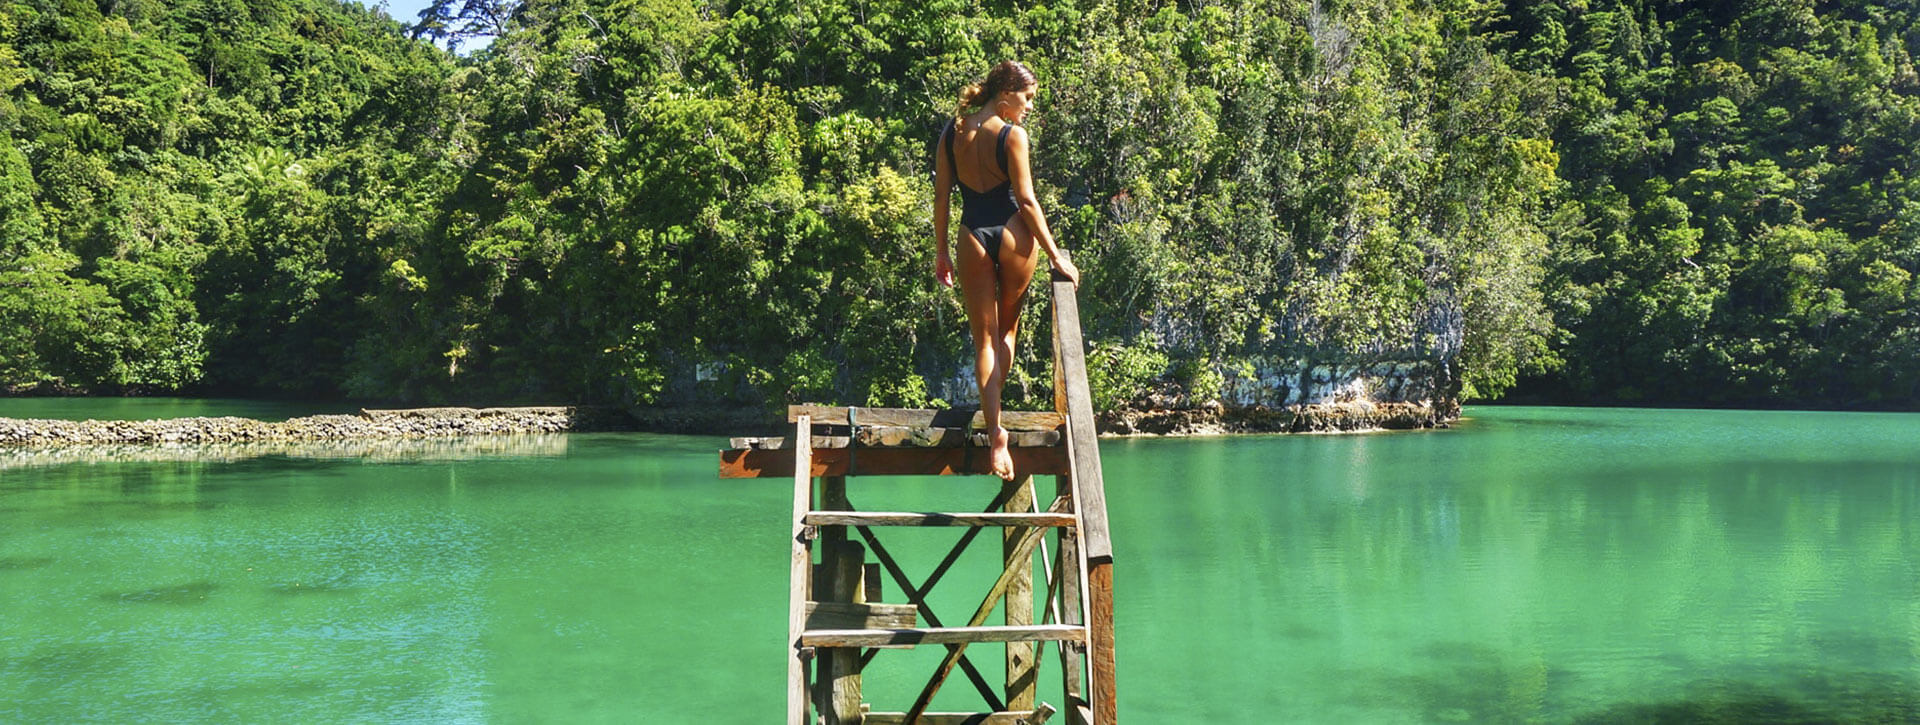 Things To Do In Siargao, Philippines